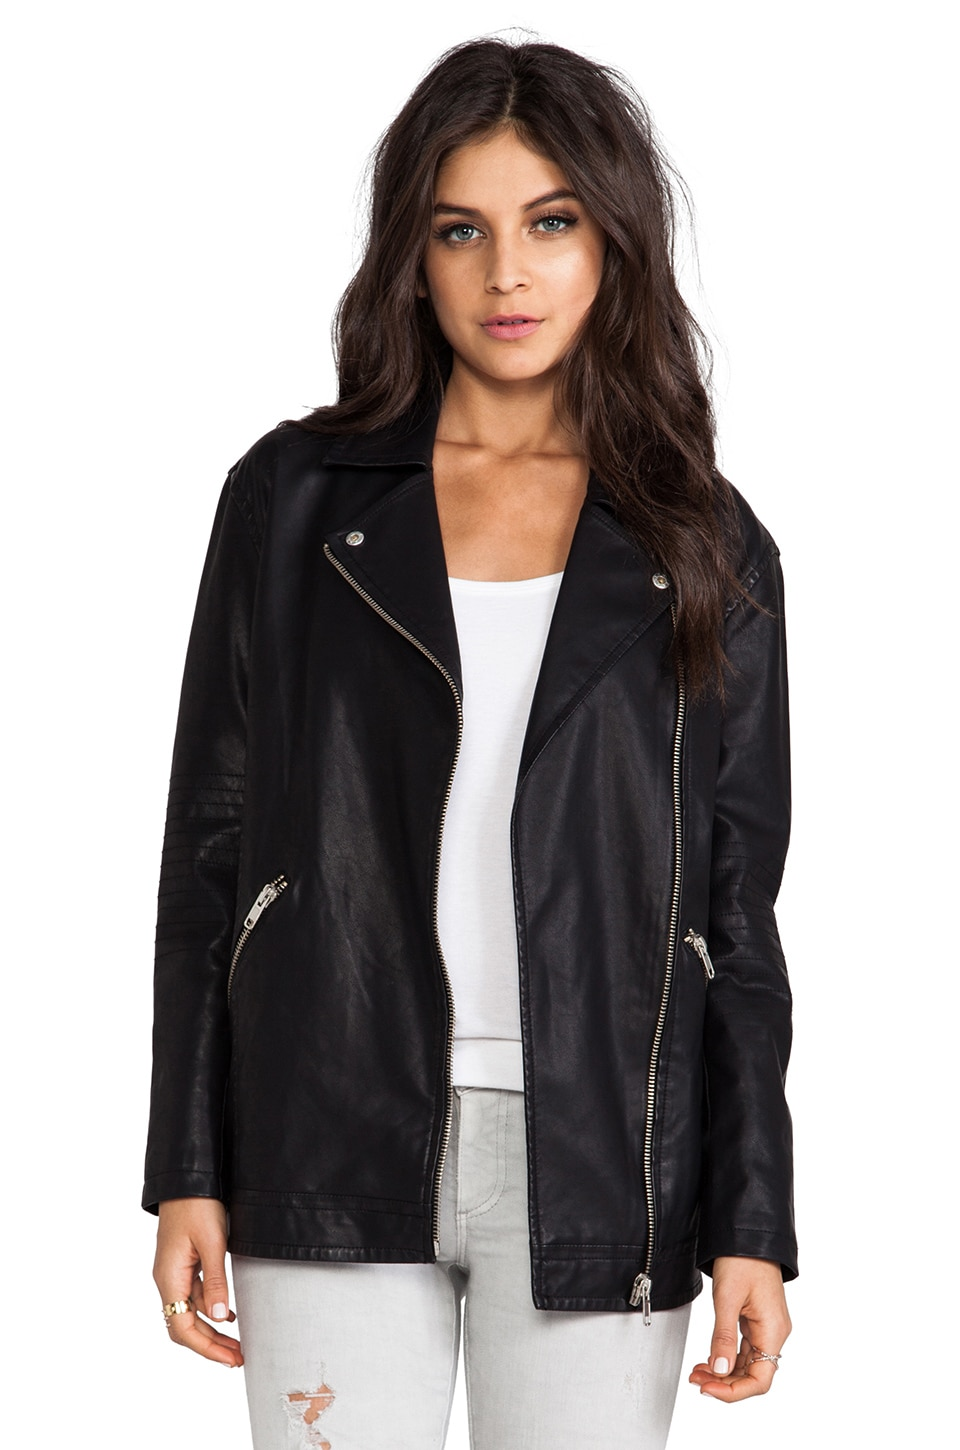 BB Dakota Atleg Vegan Leather Moto Jacket in Black